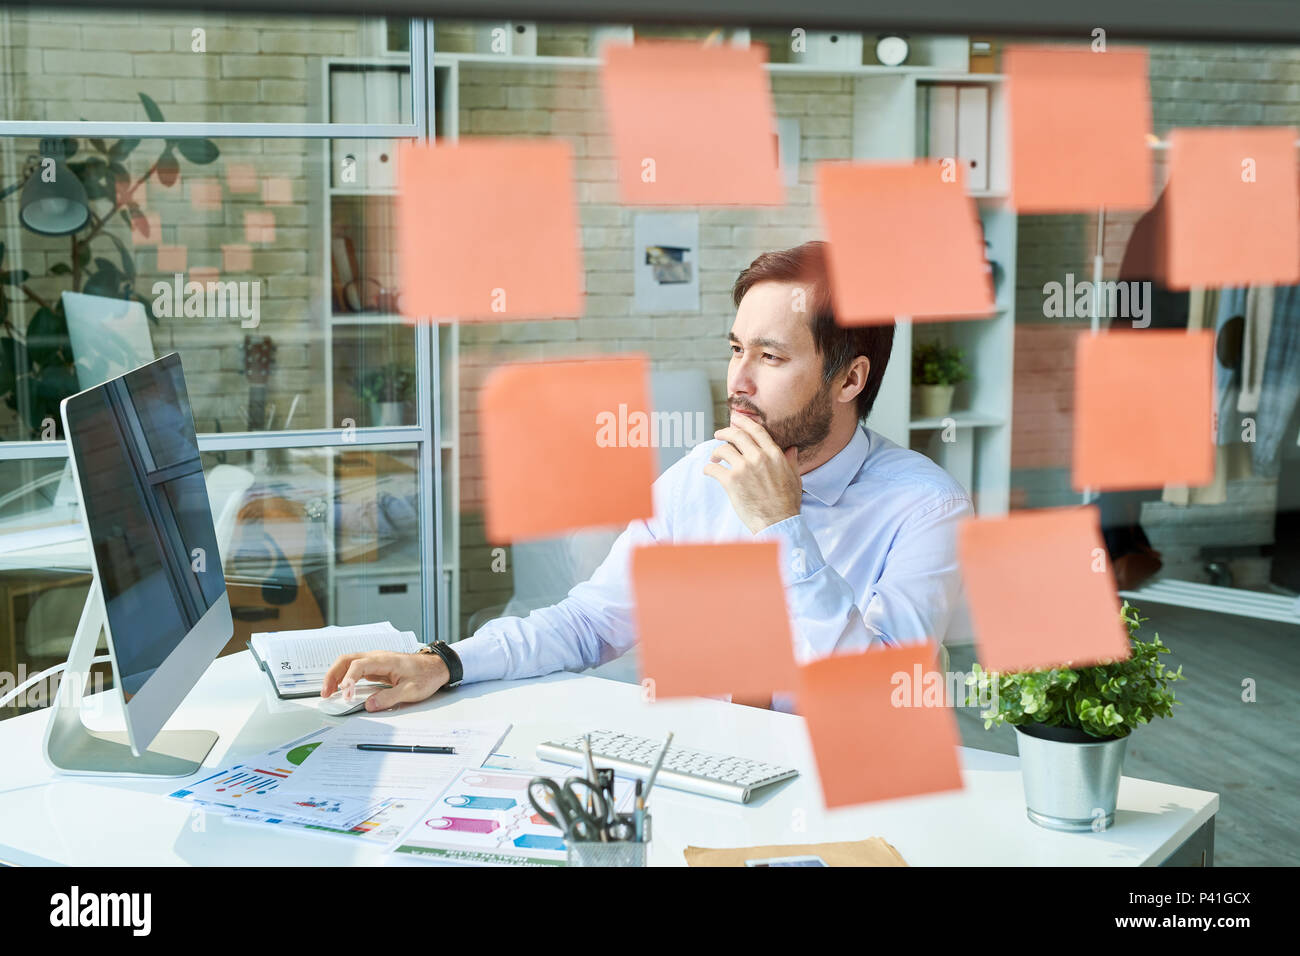 Man working in office behind glass - Stock Image